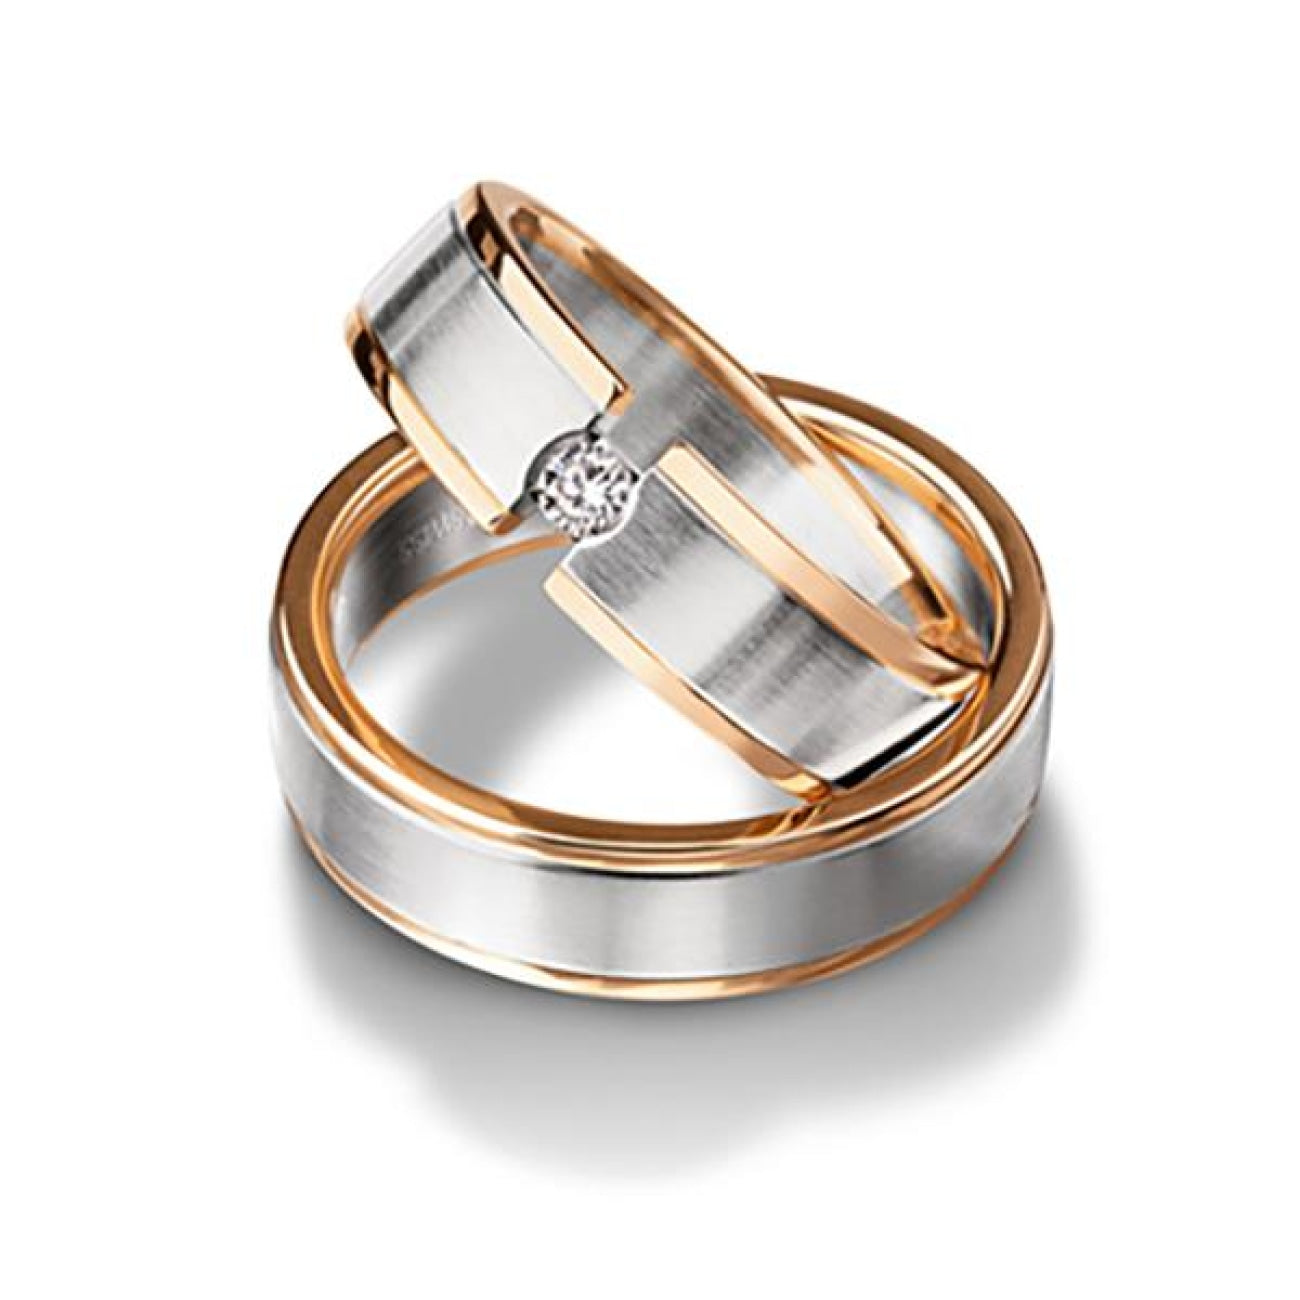 Furrer Jacot Engagement - 71-23110-B-0 | Manfredi Jewels